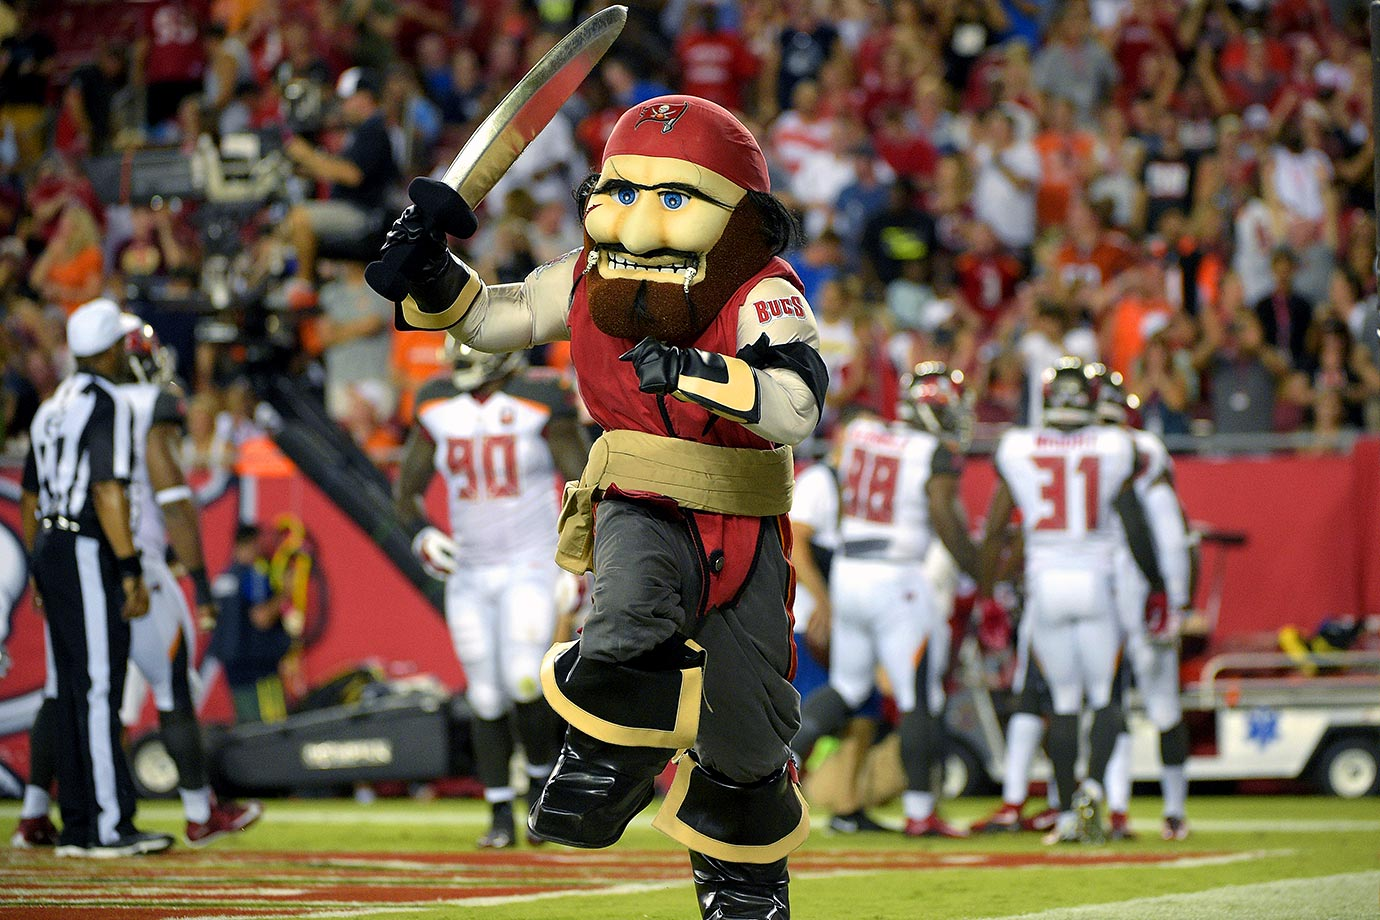 From the winking Bucco Bruce to the constipated Captain Fear, the Buccaneers can't win with their mascot. From the unibrow to the 11 o'clock shadow, this guy looks more like a danger to himself than anyone else.